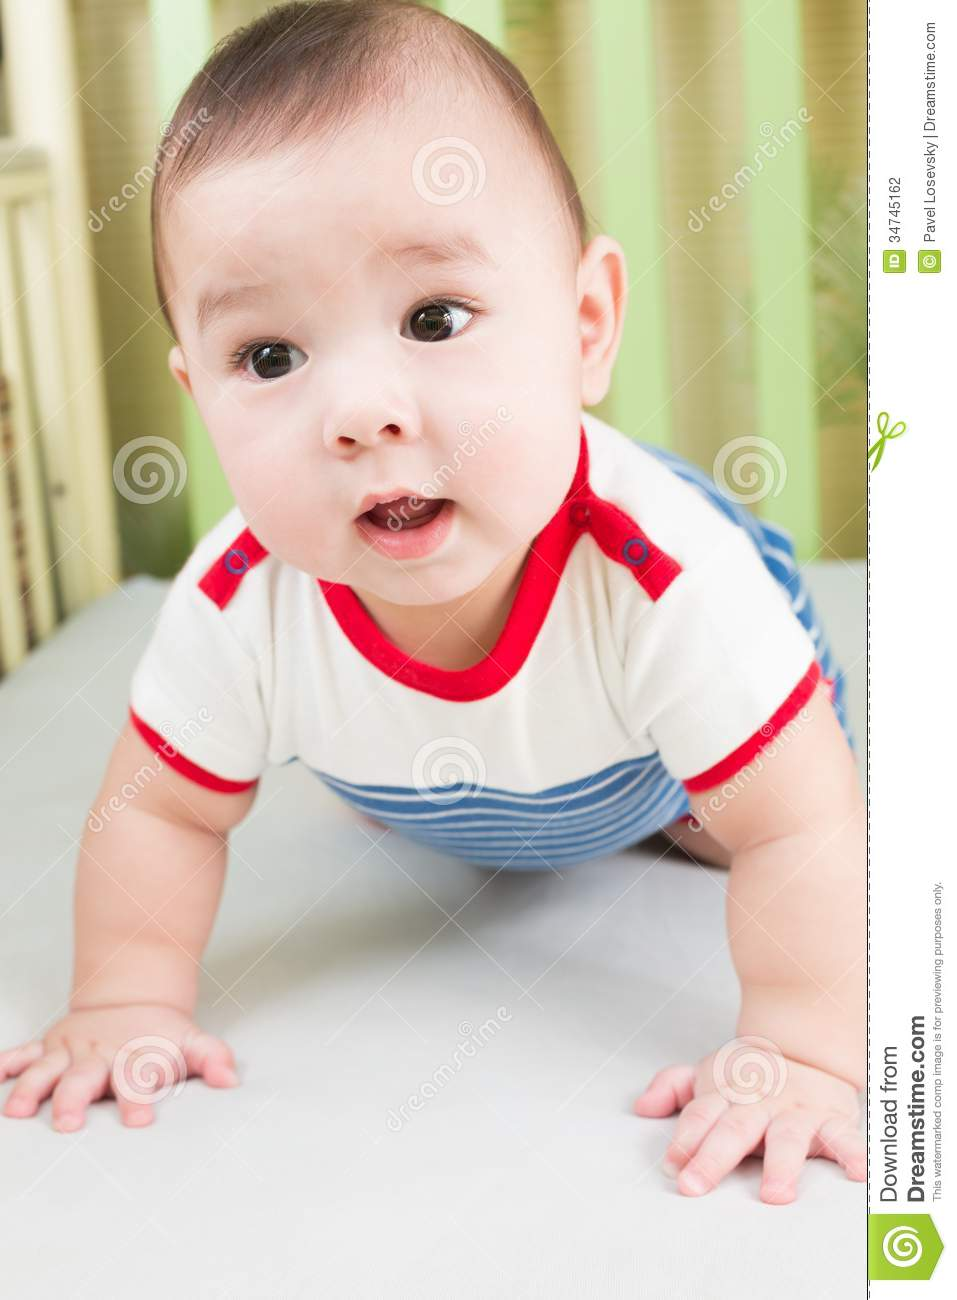 sweet baby boy in striped clothes stock photo - image of fence, hand